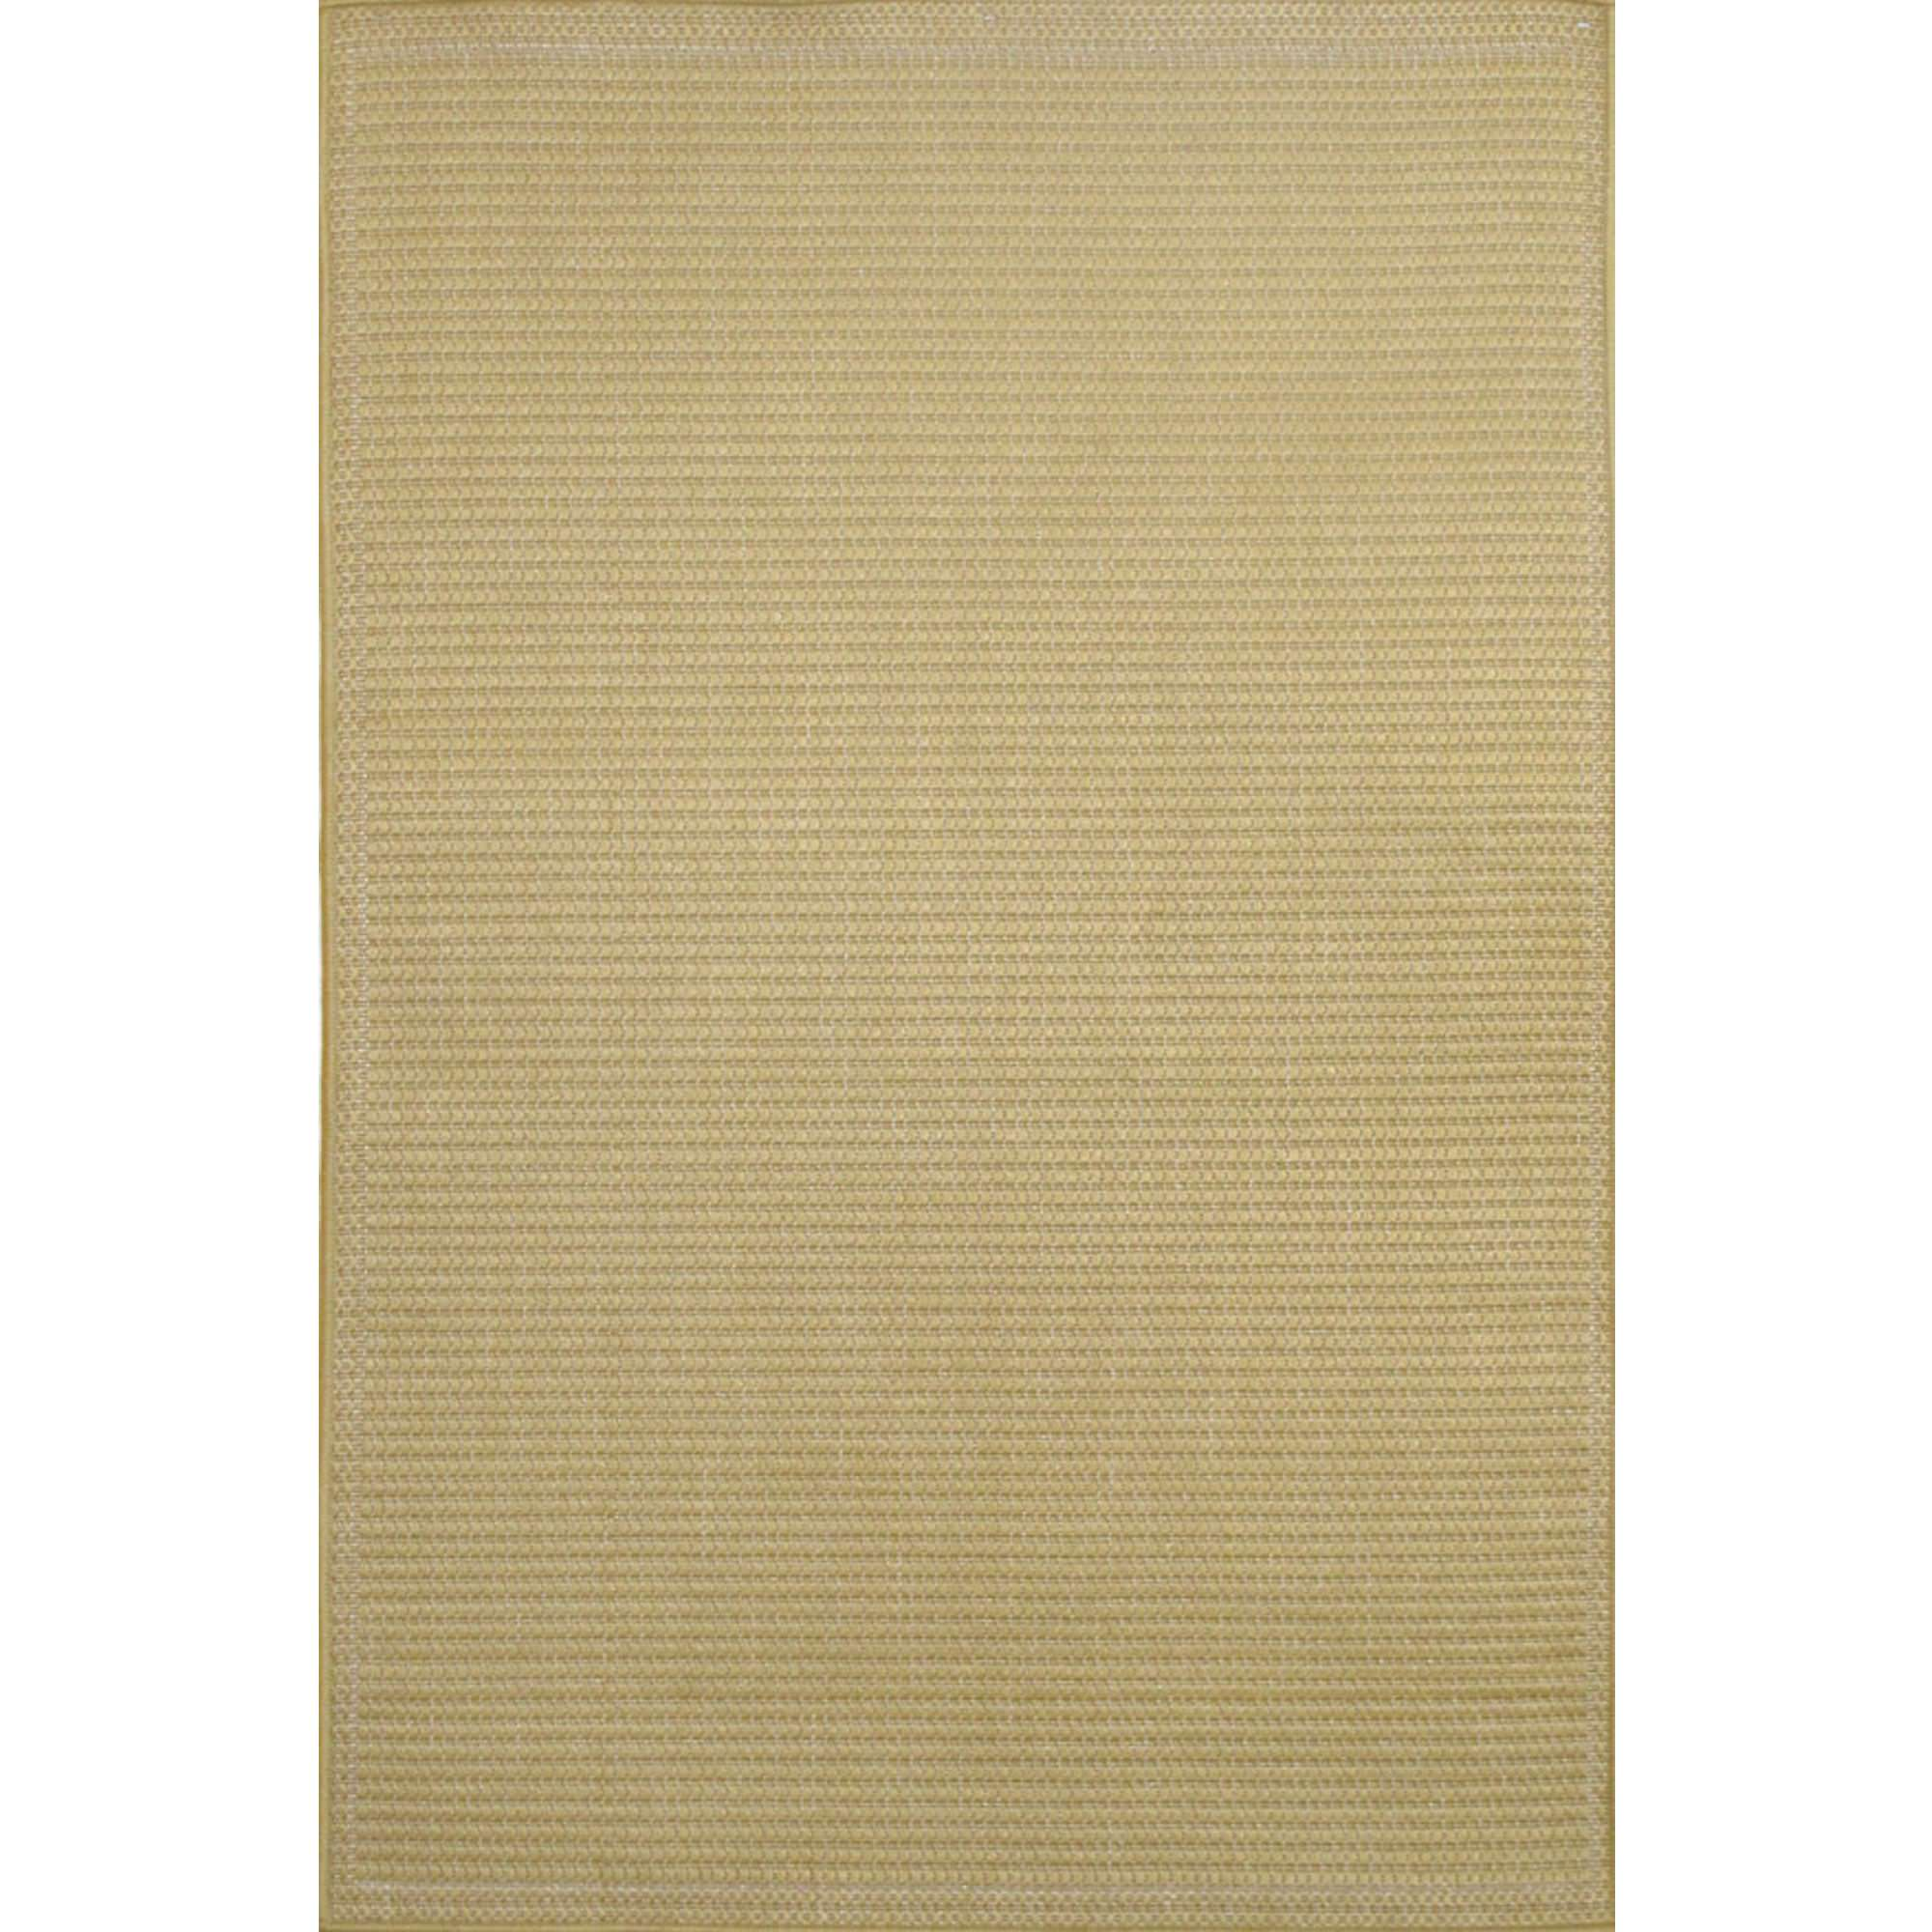 Shop terrace texture yellow outdoor rug 7 39 10 x 9 39 10 for Terrace texture